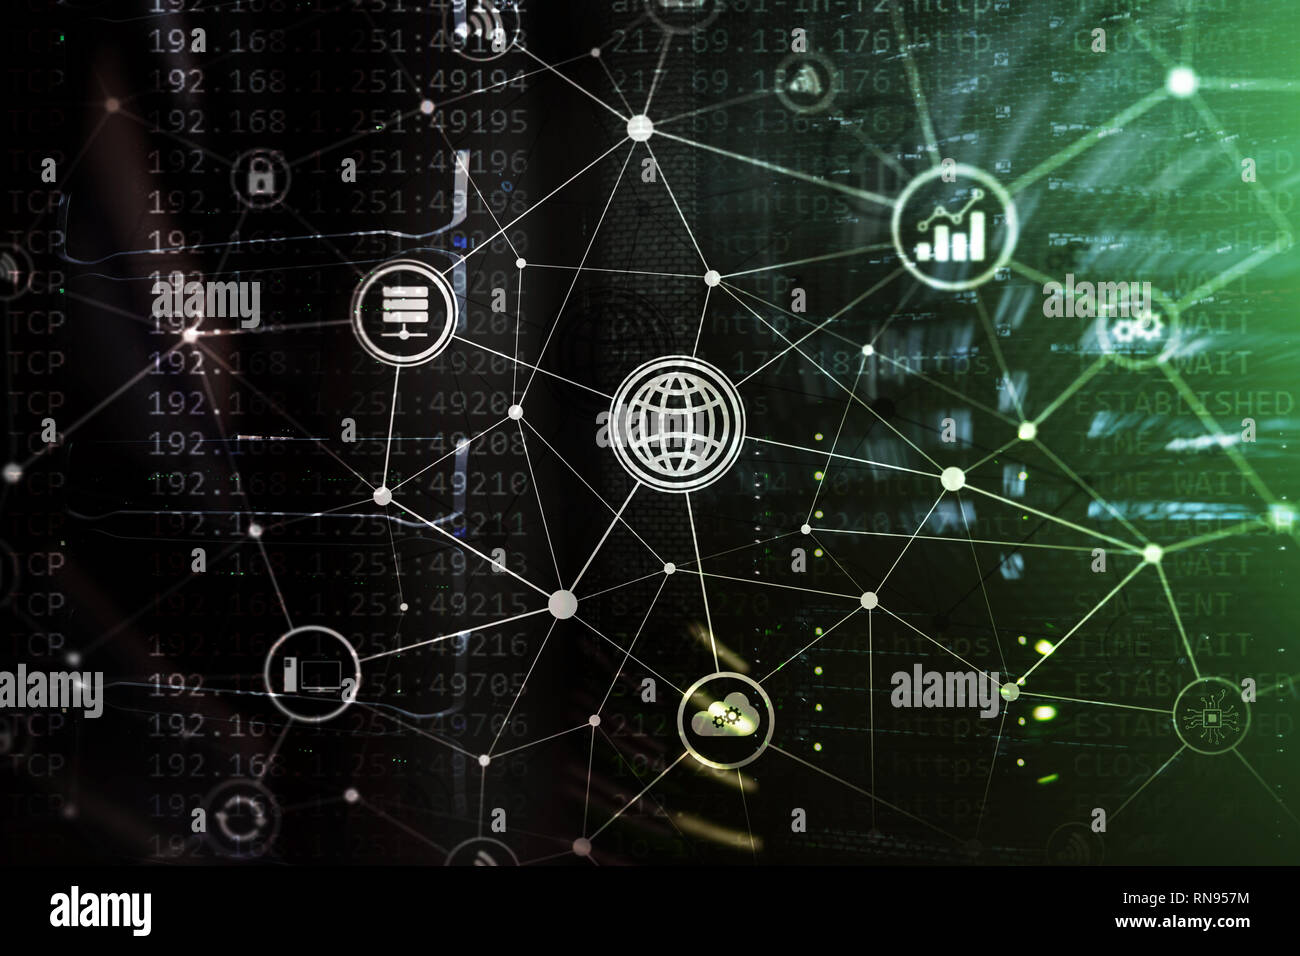 ICT - information and telecommunication technology and IOT - internet of things concepts. Diagrams with icons on server room backgrounds. - Stock Image